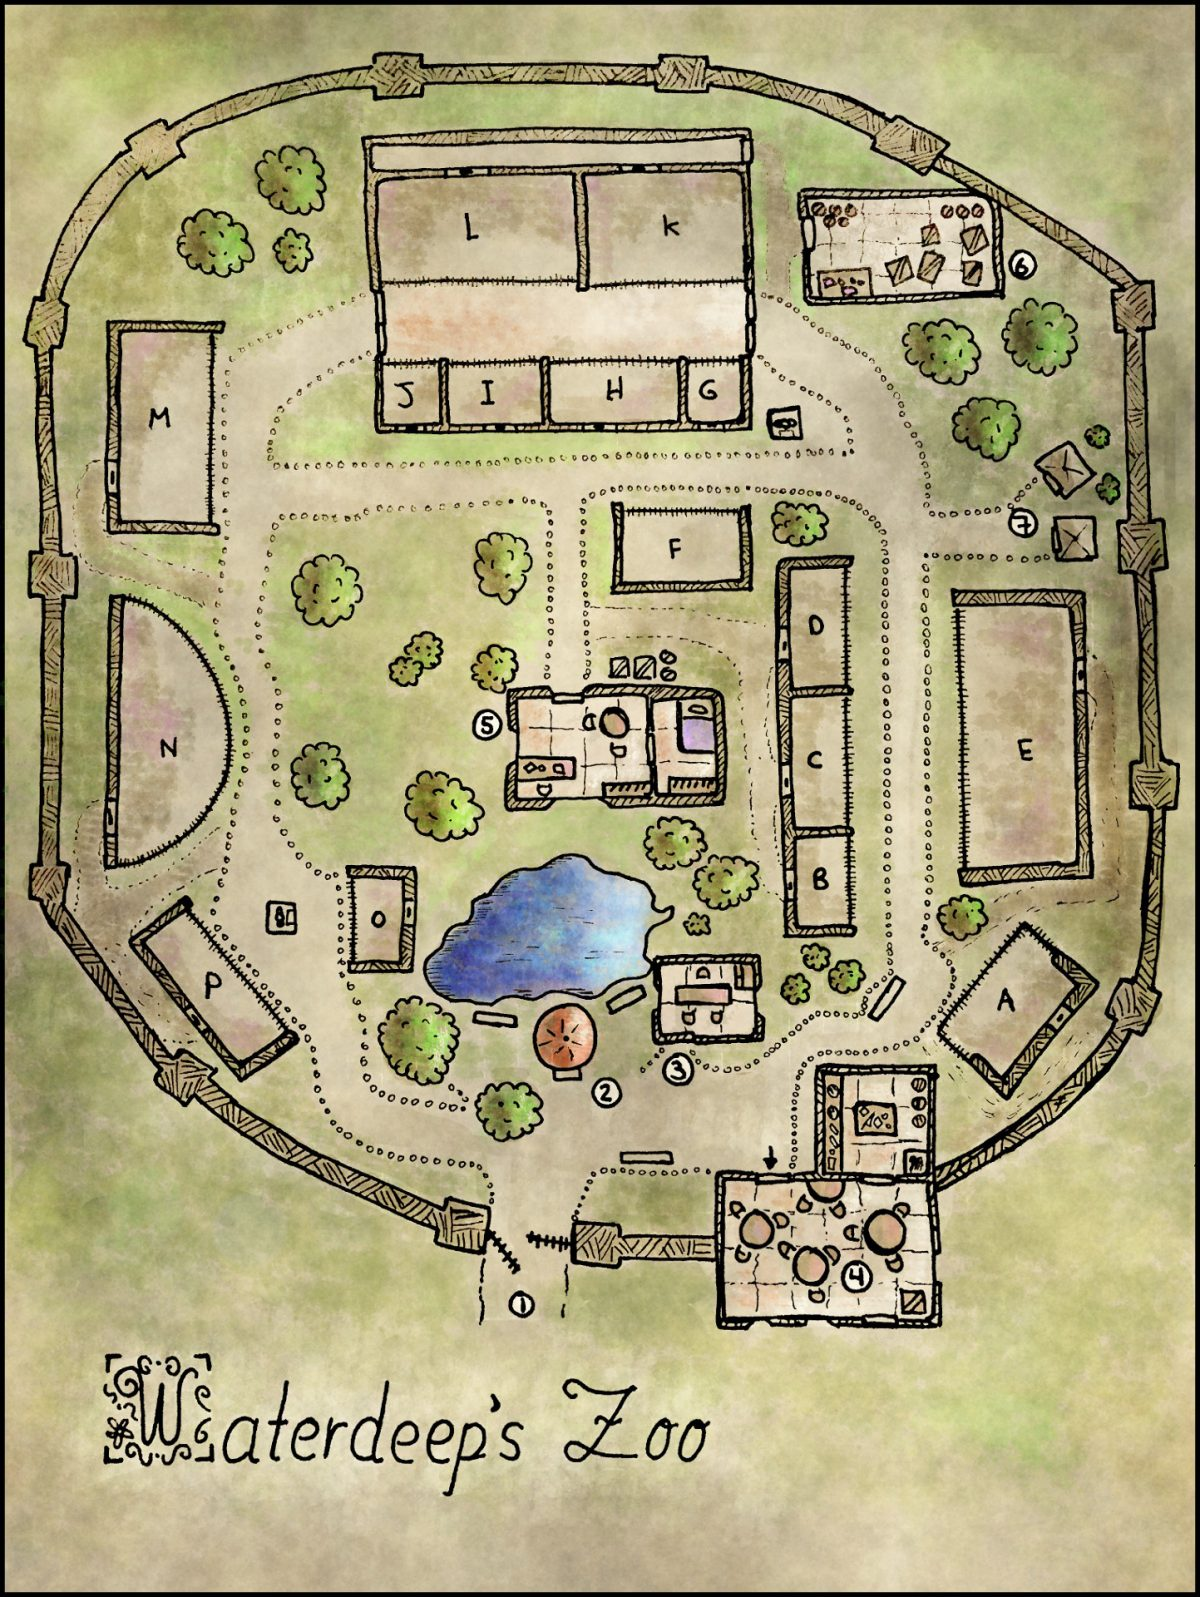 Map 18 – Waterdeep's Zoo